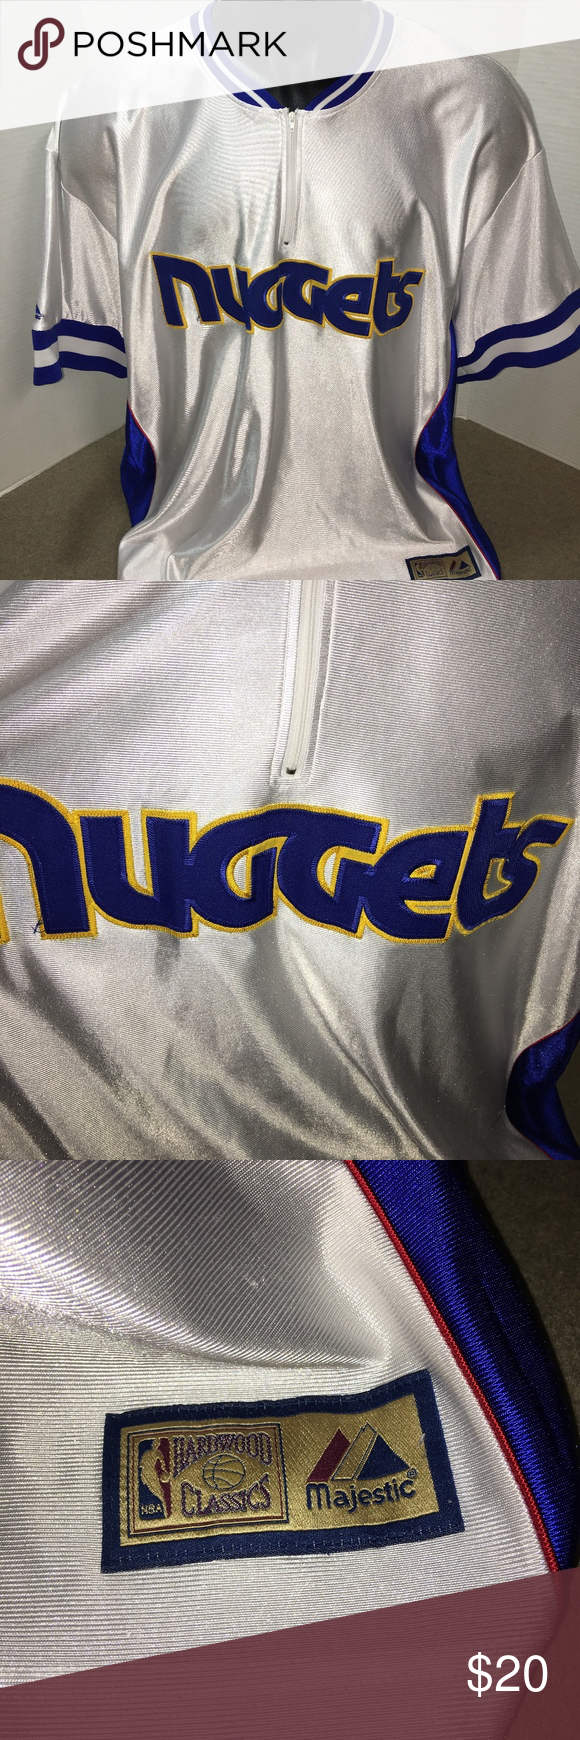 the best attitude 70b8d 99872 Majestic Denver Nuggets Warm Up Shirt Mens 3X Awesome Mens ...